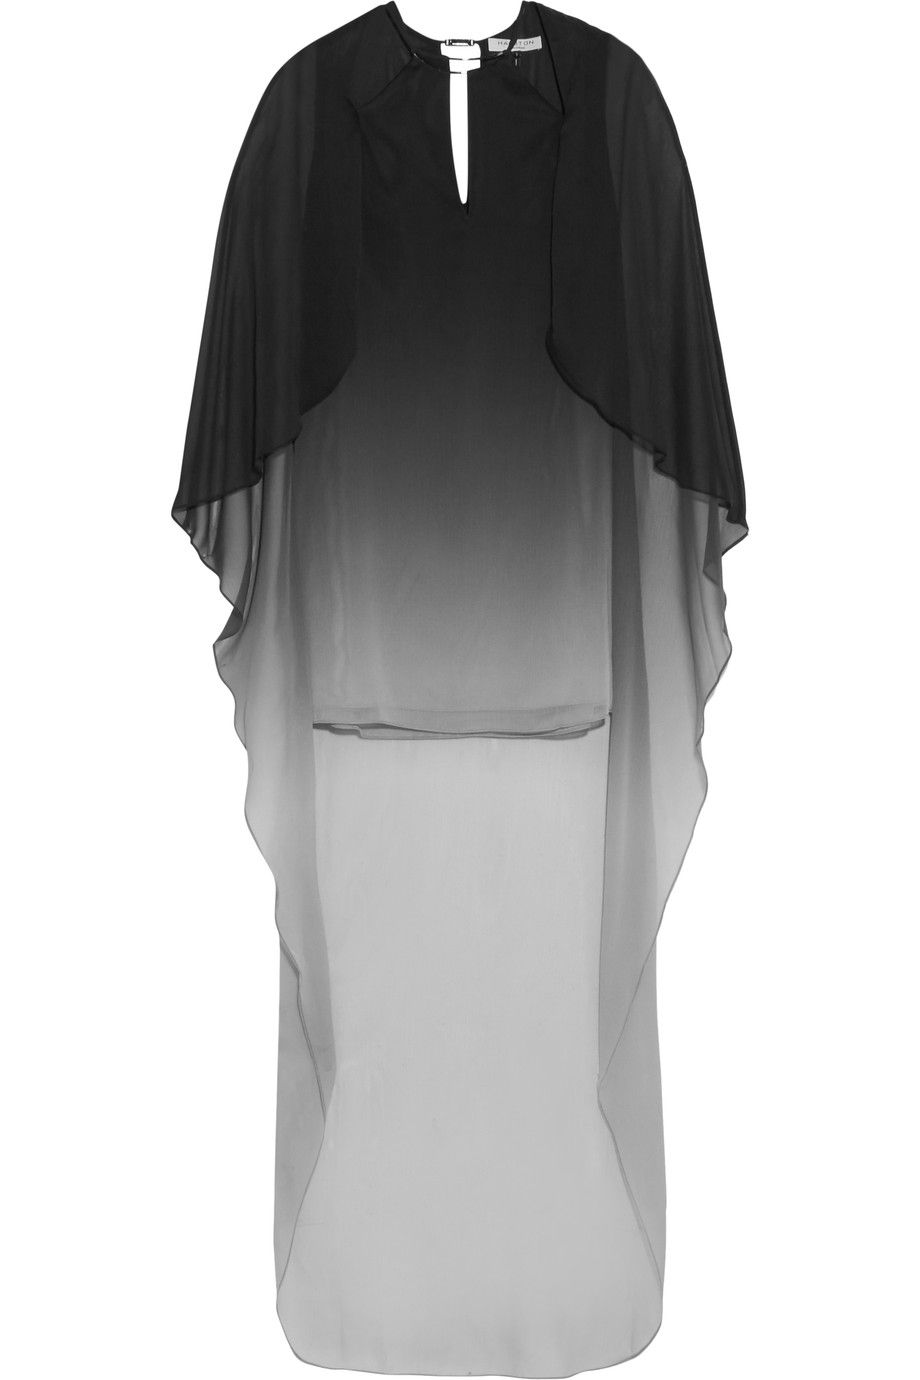 HALSTON HERITAGE Ombré crinkled-chiffon mini dress. #halstonheritage #cloth #dress